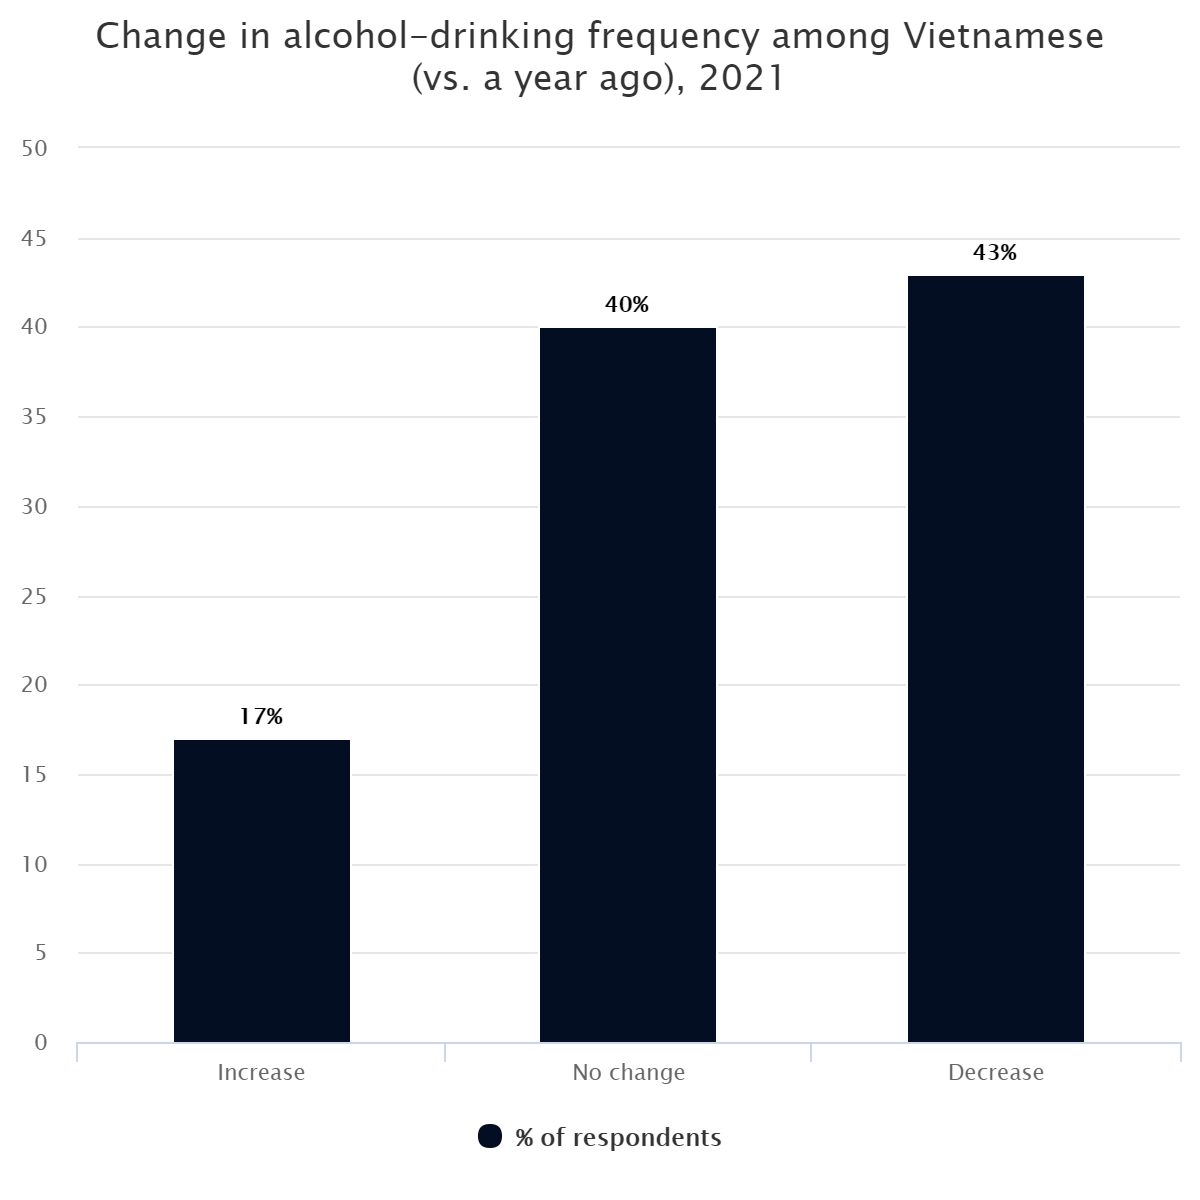 Change in alcohol-drinking frequency among Vietnamese (vs. a year ago), 2021